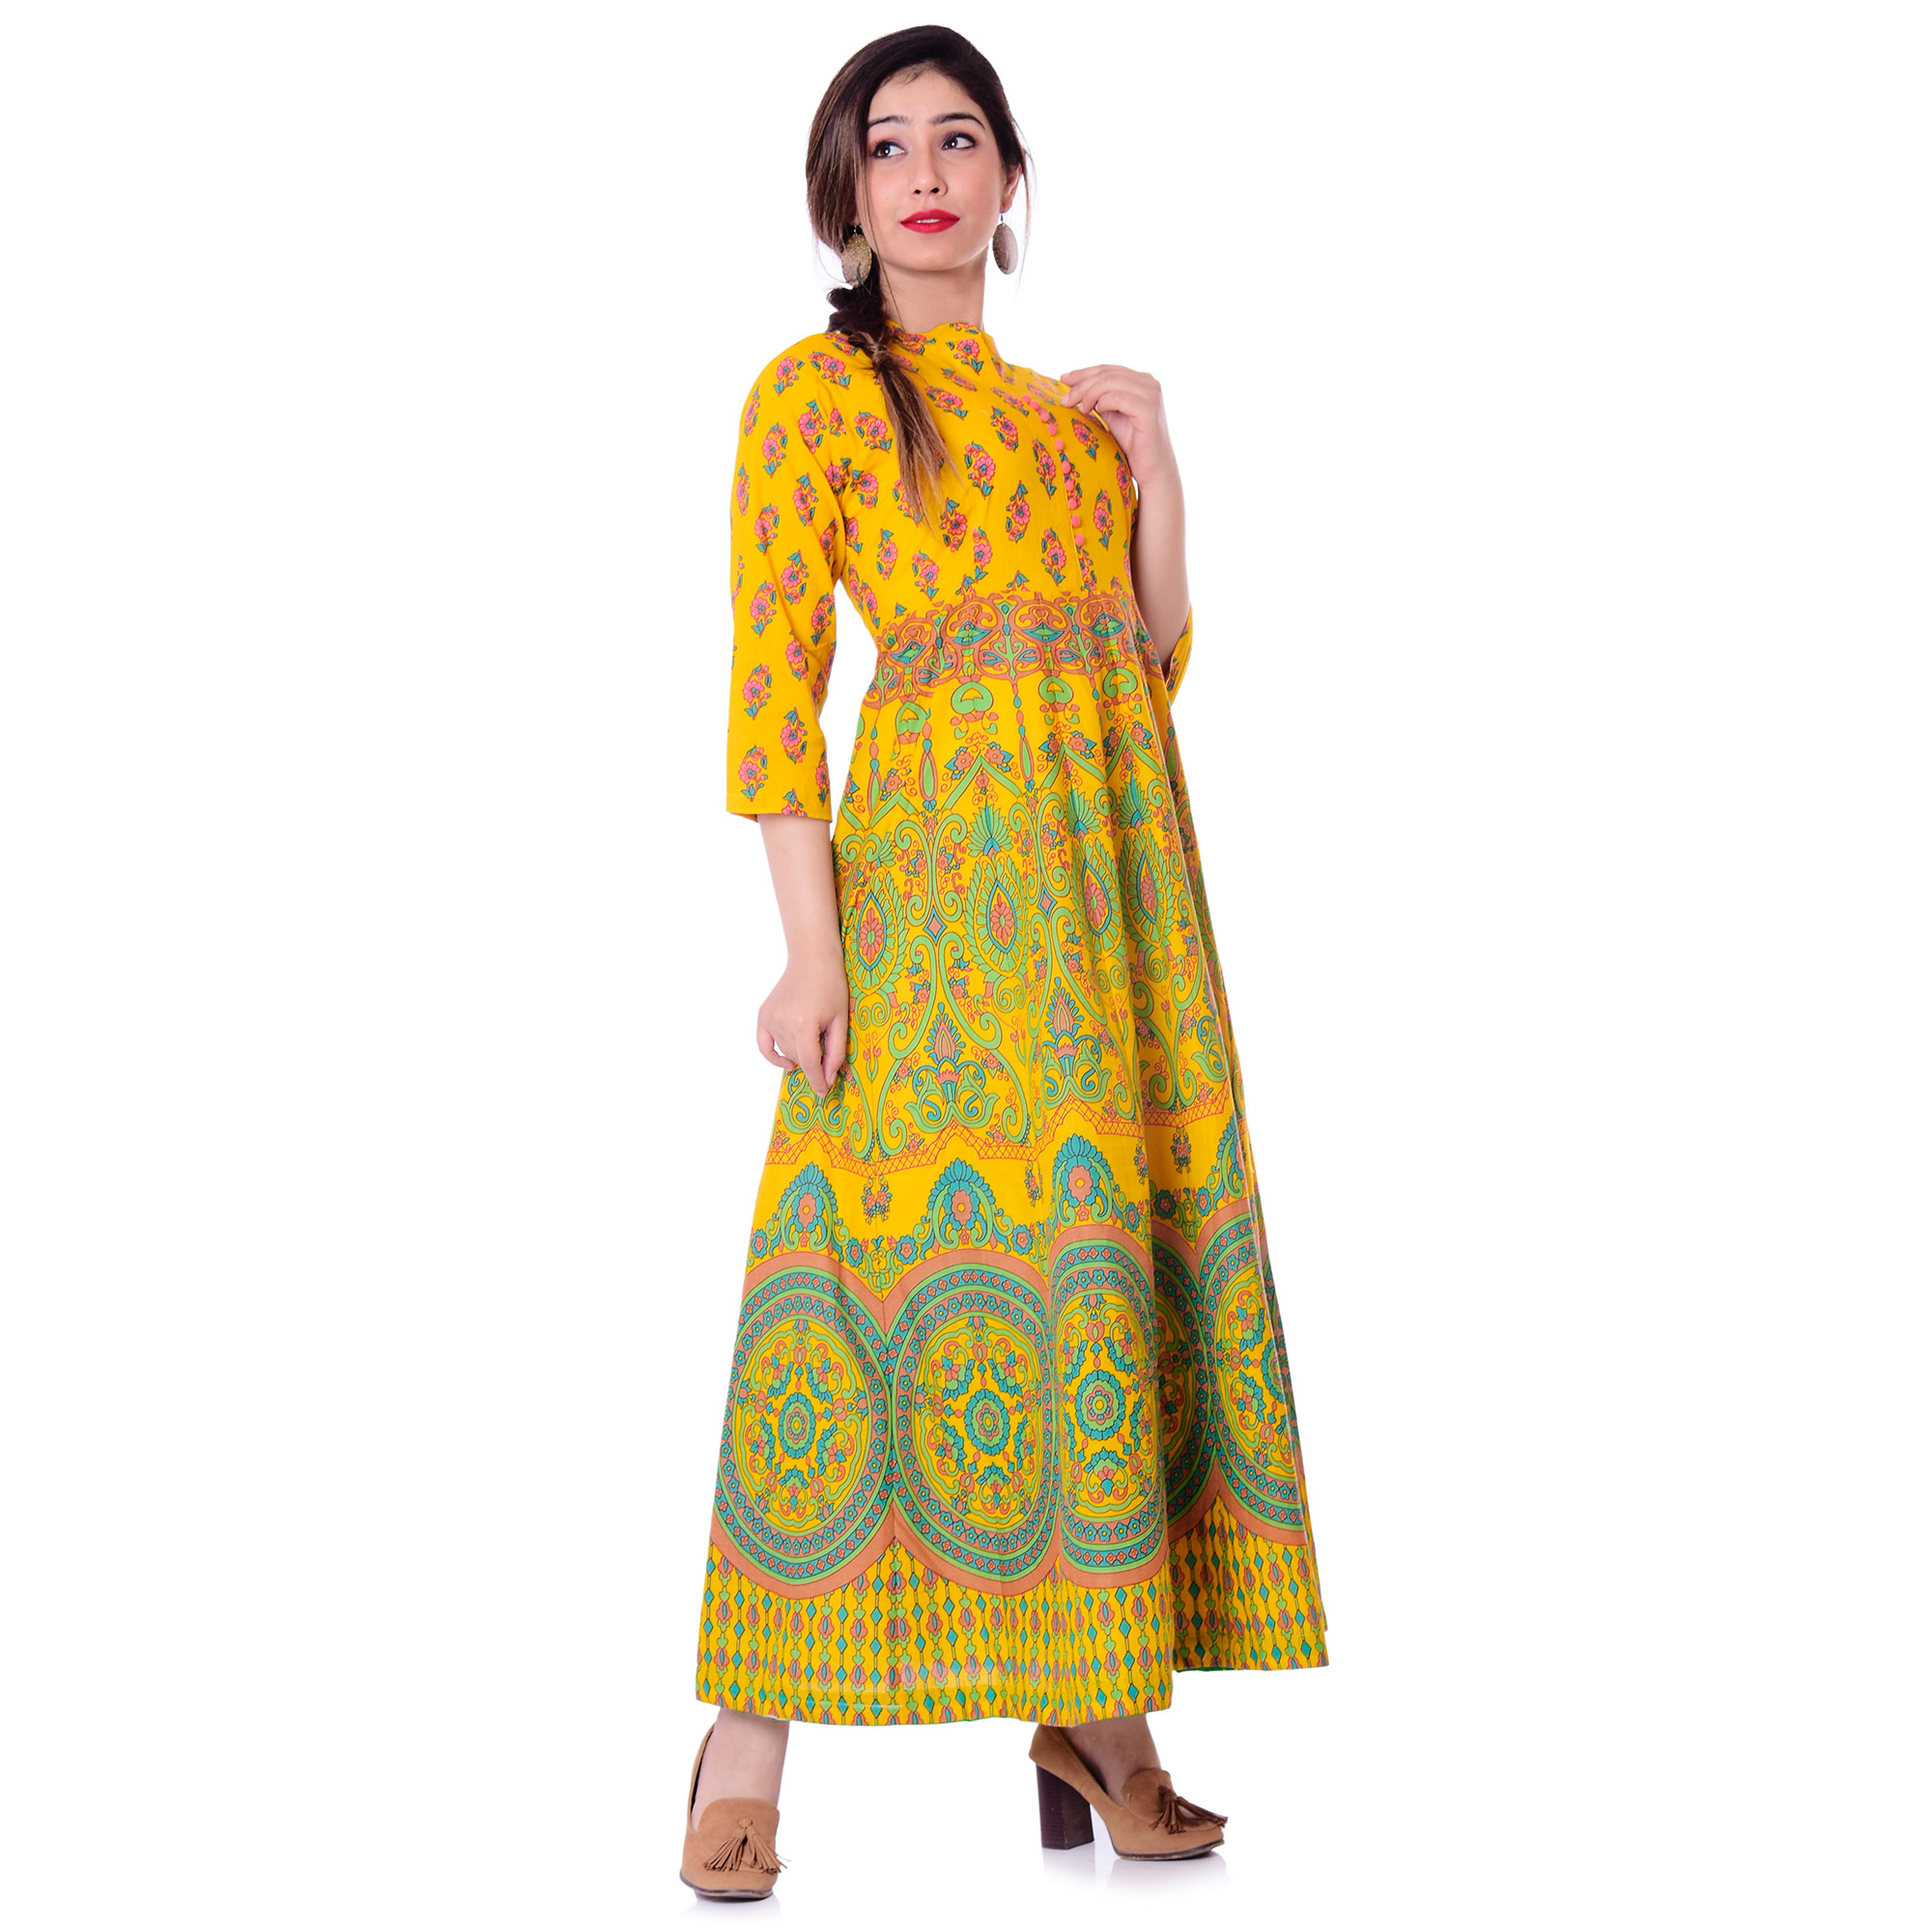 Pooja Fashion - Yellow Colored Casual Wear Printed Ankle Length Cotton Kurti